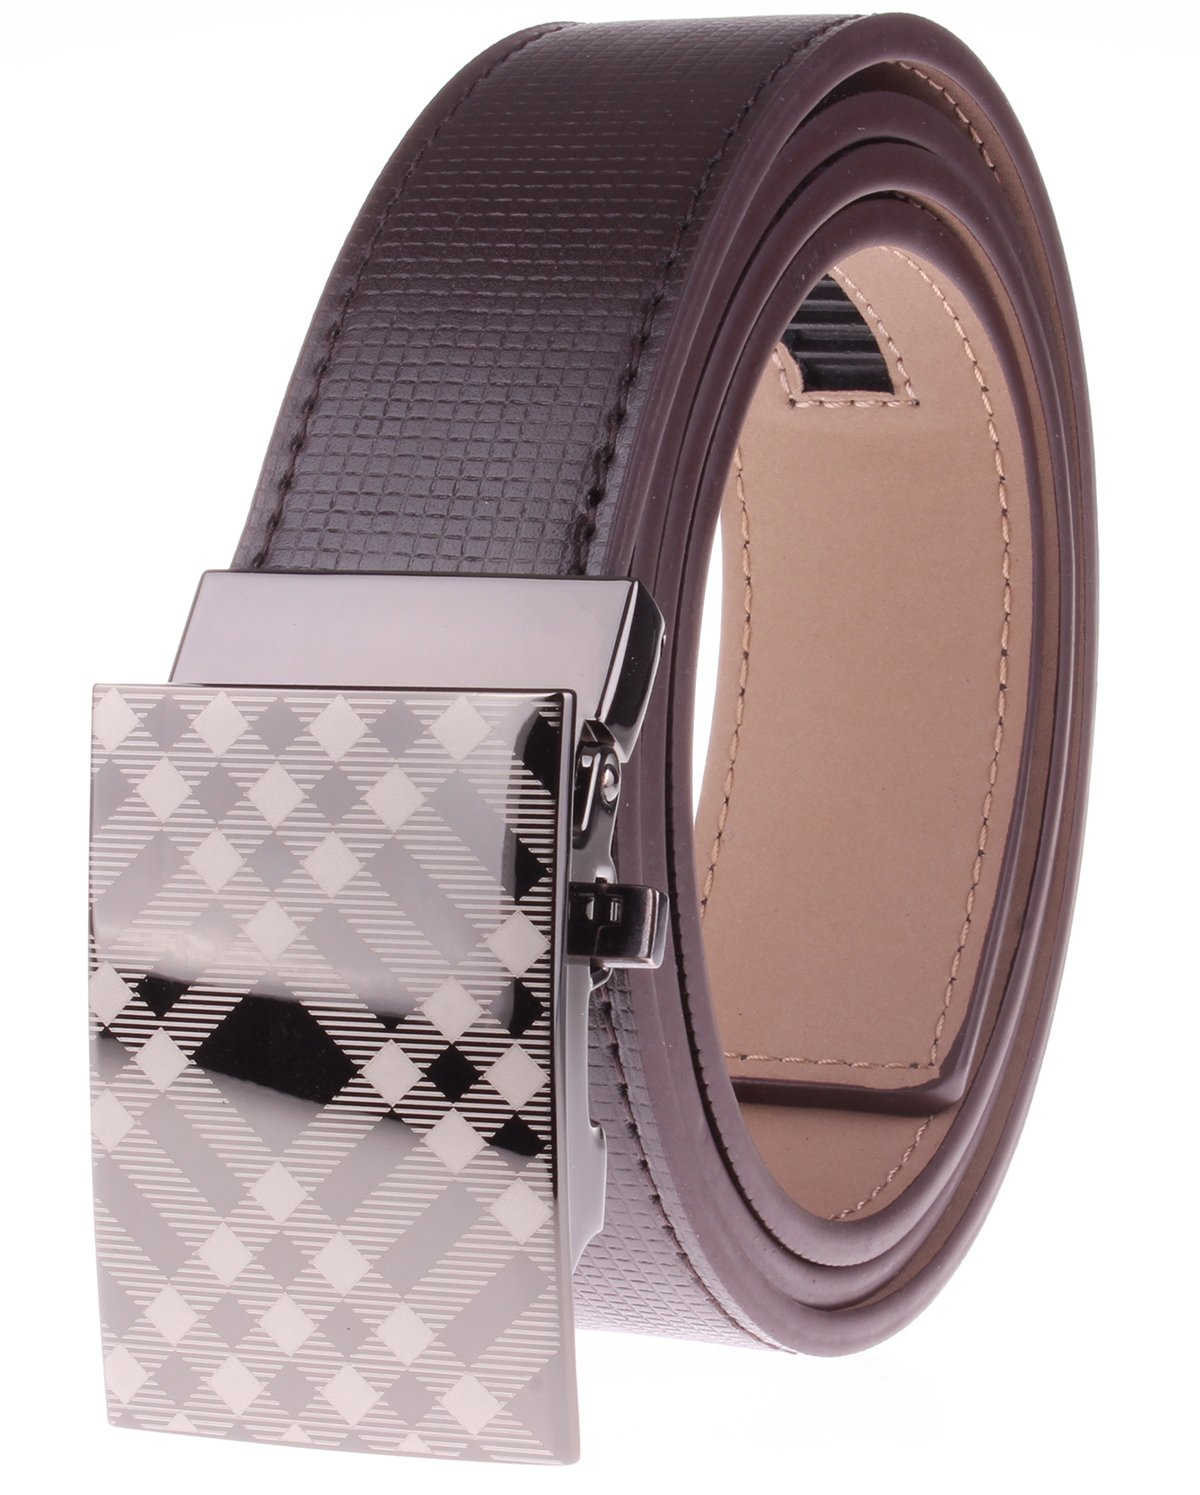 Enimay ACCESSORY メンズ B01N6S15ZN XL|Black Checkers Brown Black Checkers Brown XL